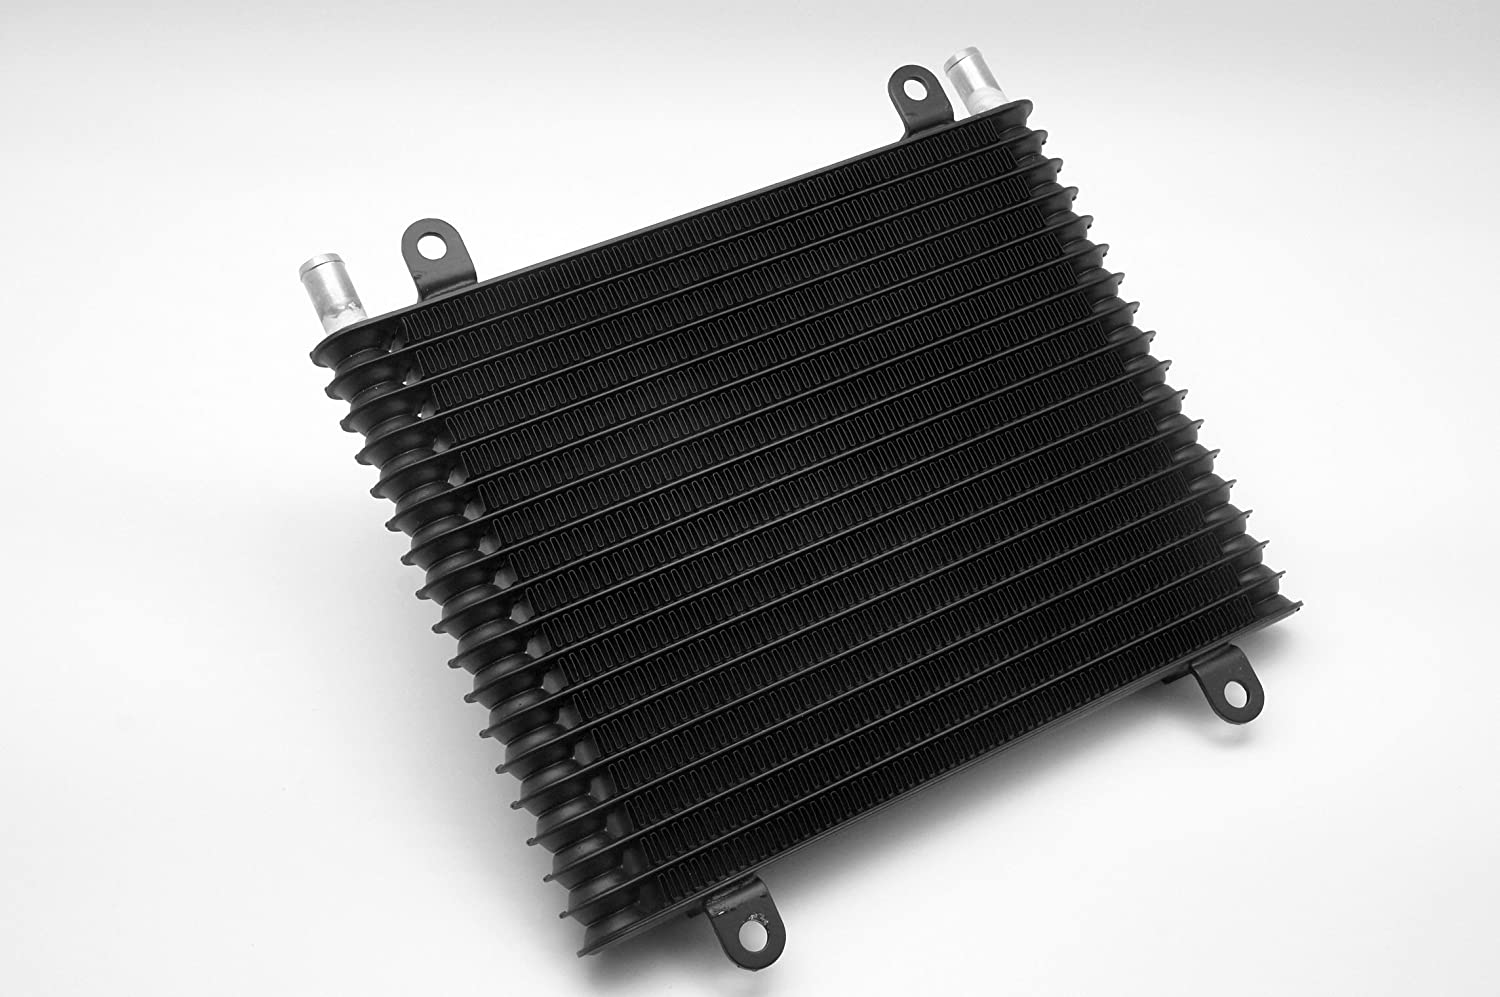 16mm Barb Ports Compact Core Size 12x8.8x1.26 Black Autobahn88 Universal Oil//Automatic Transmission Fluid ATF Cooler 300x225x32mm 18 Rows